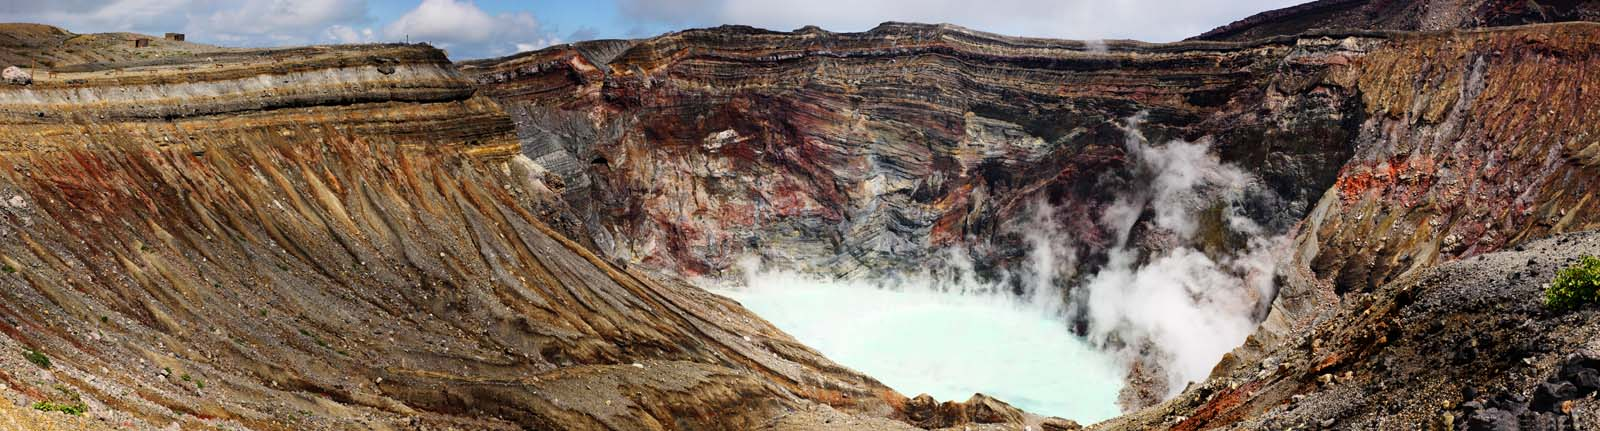 photo,material,free,landscape,picture,stock photo,Creative Commons,Mt. Aso Mt. Naka-dake, crater lake, volcano, An active volcano, Mt. Aso